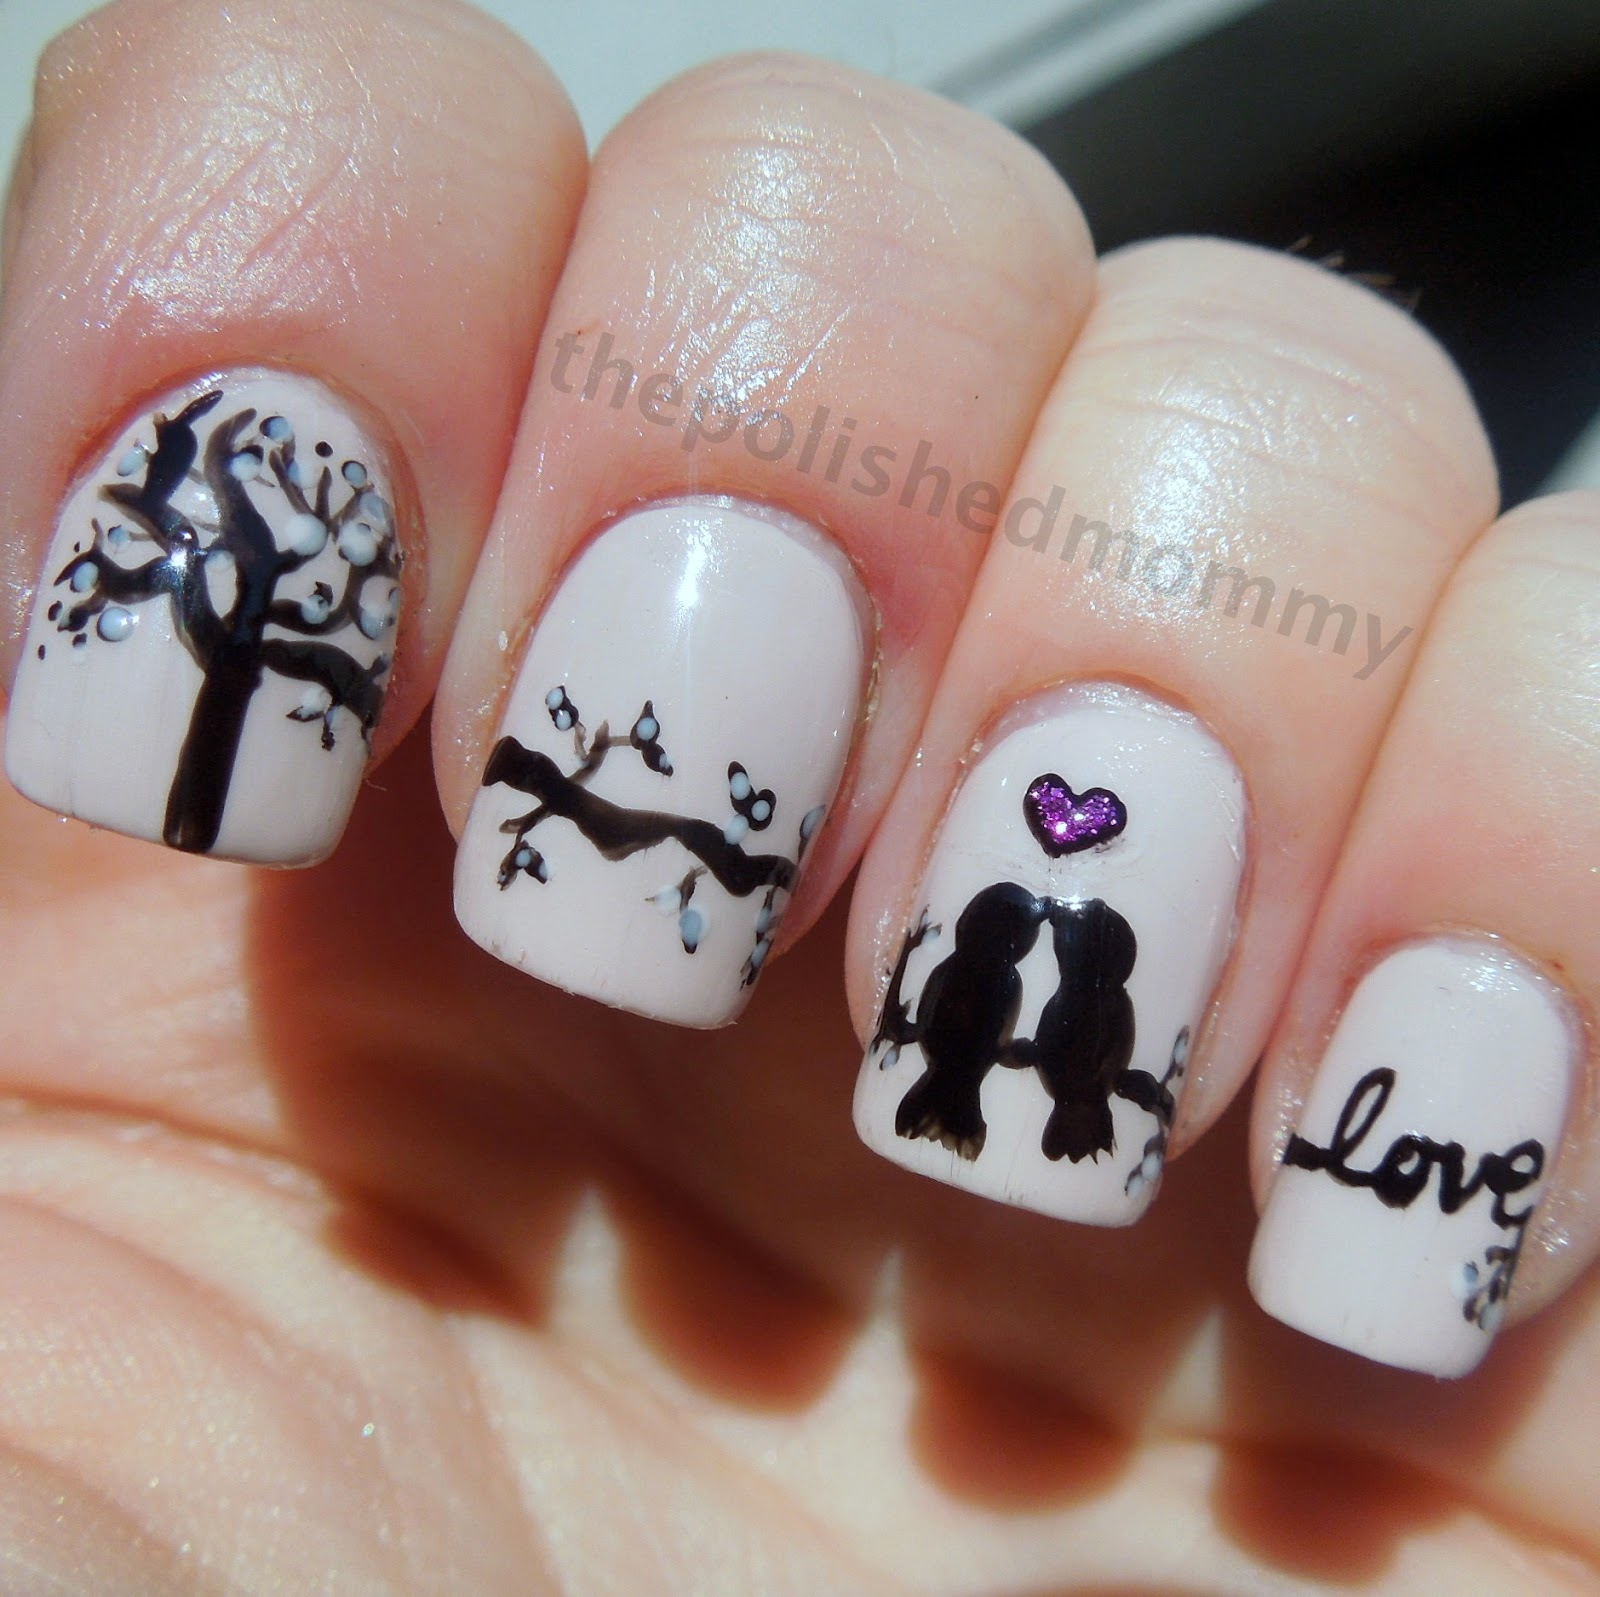 Love Nail Art Designs Gallery: The Polished Mommy